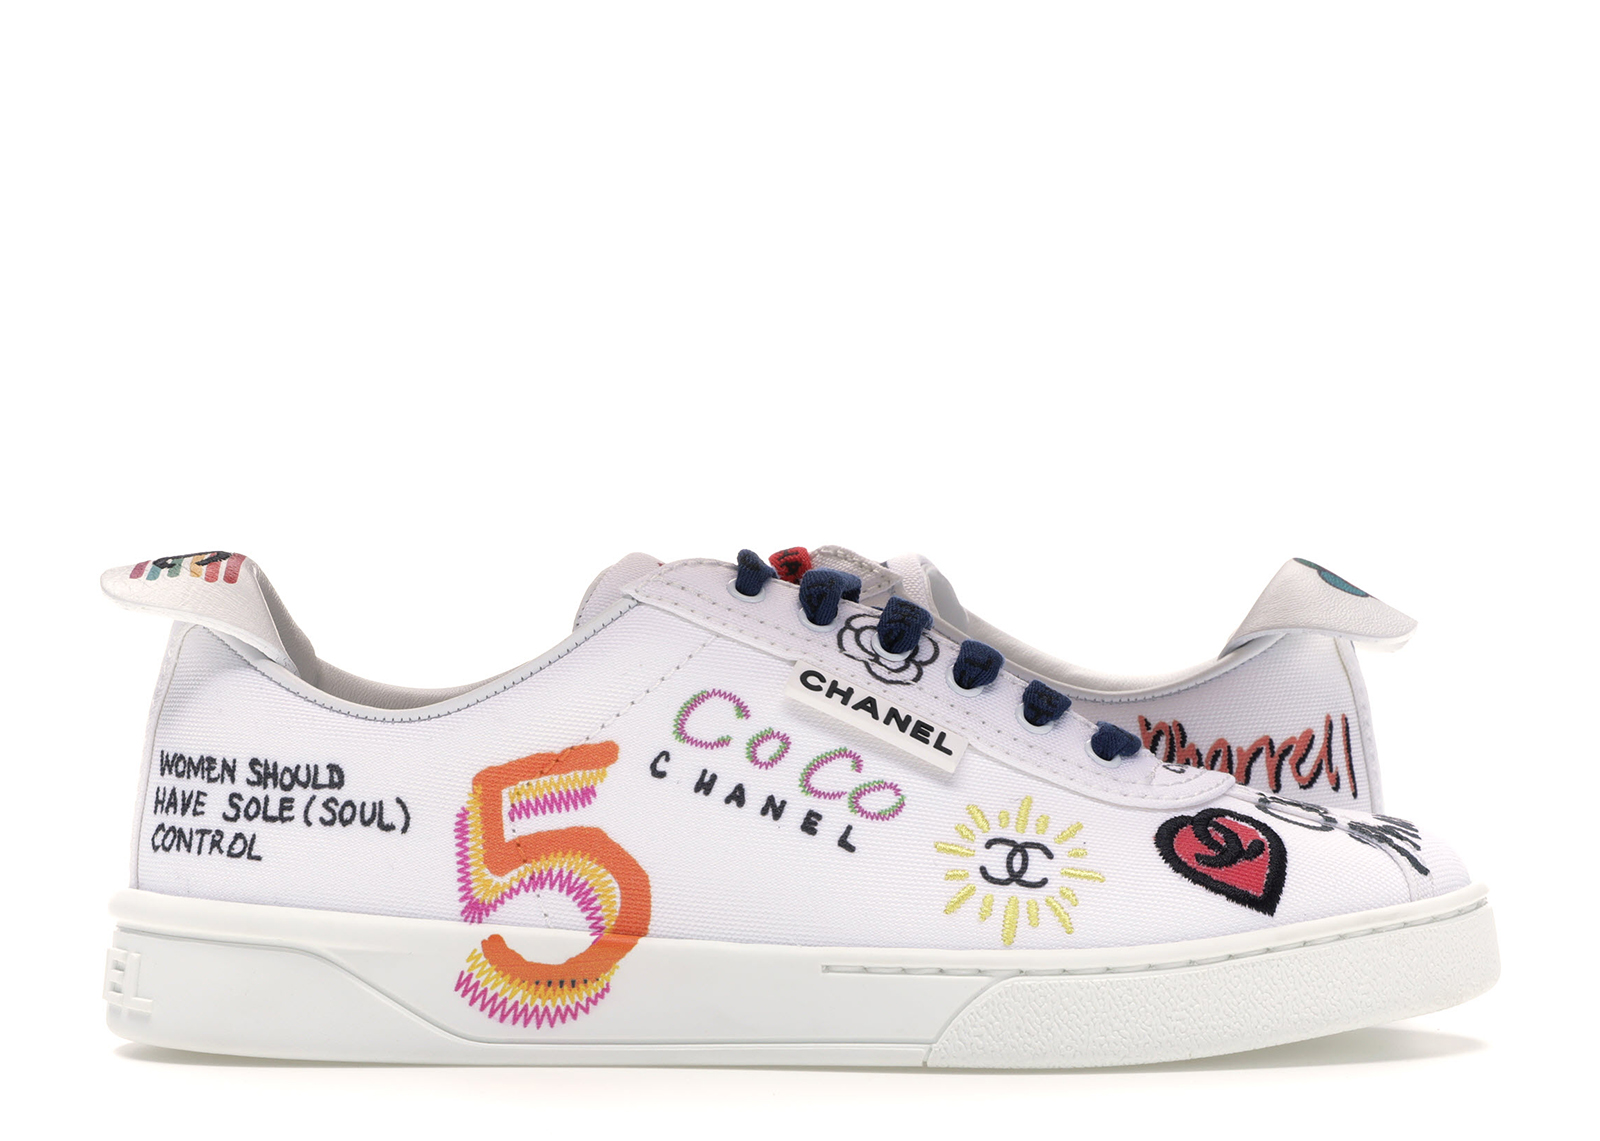 chanel and pharrell sneakers